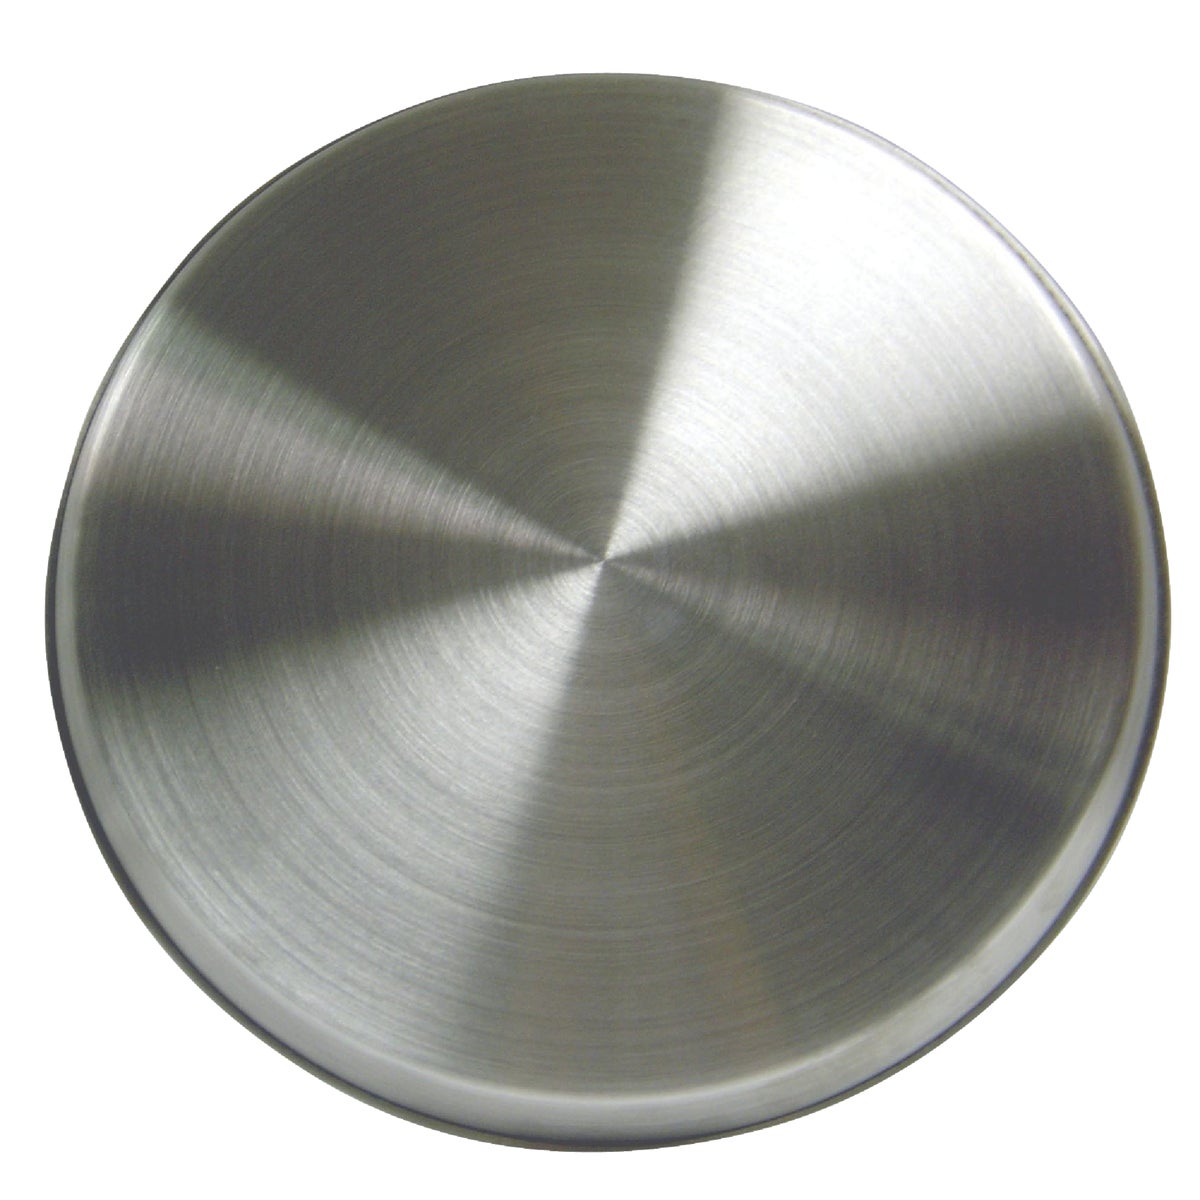 ROUND STNL BURNER KOVERS - 550-4 by Range Kleen Mfg Inc